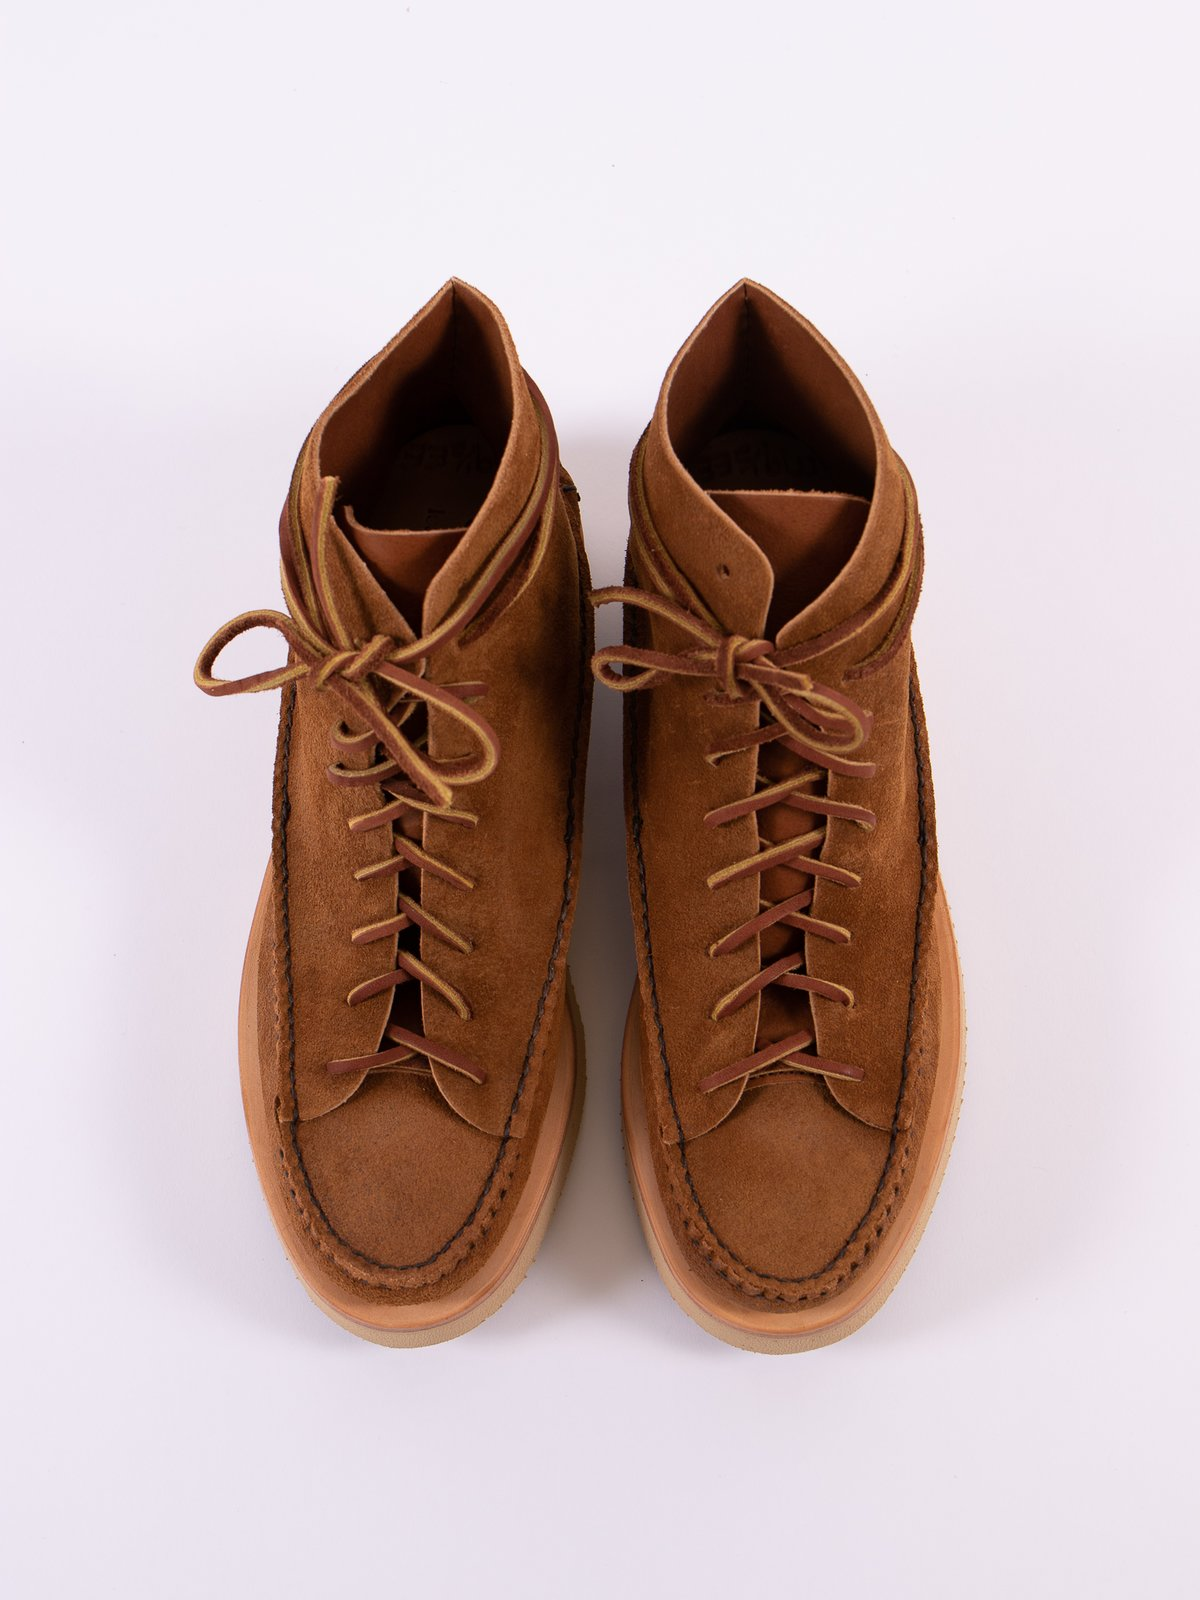 Golden Brown All Handsewn Sneaker Moc High Boot - Image 8